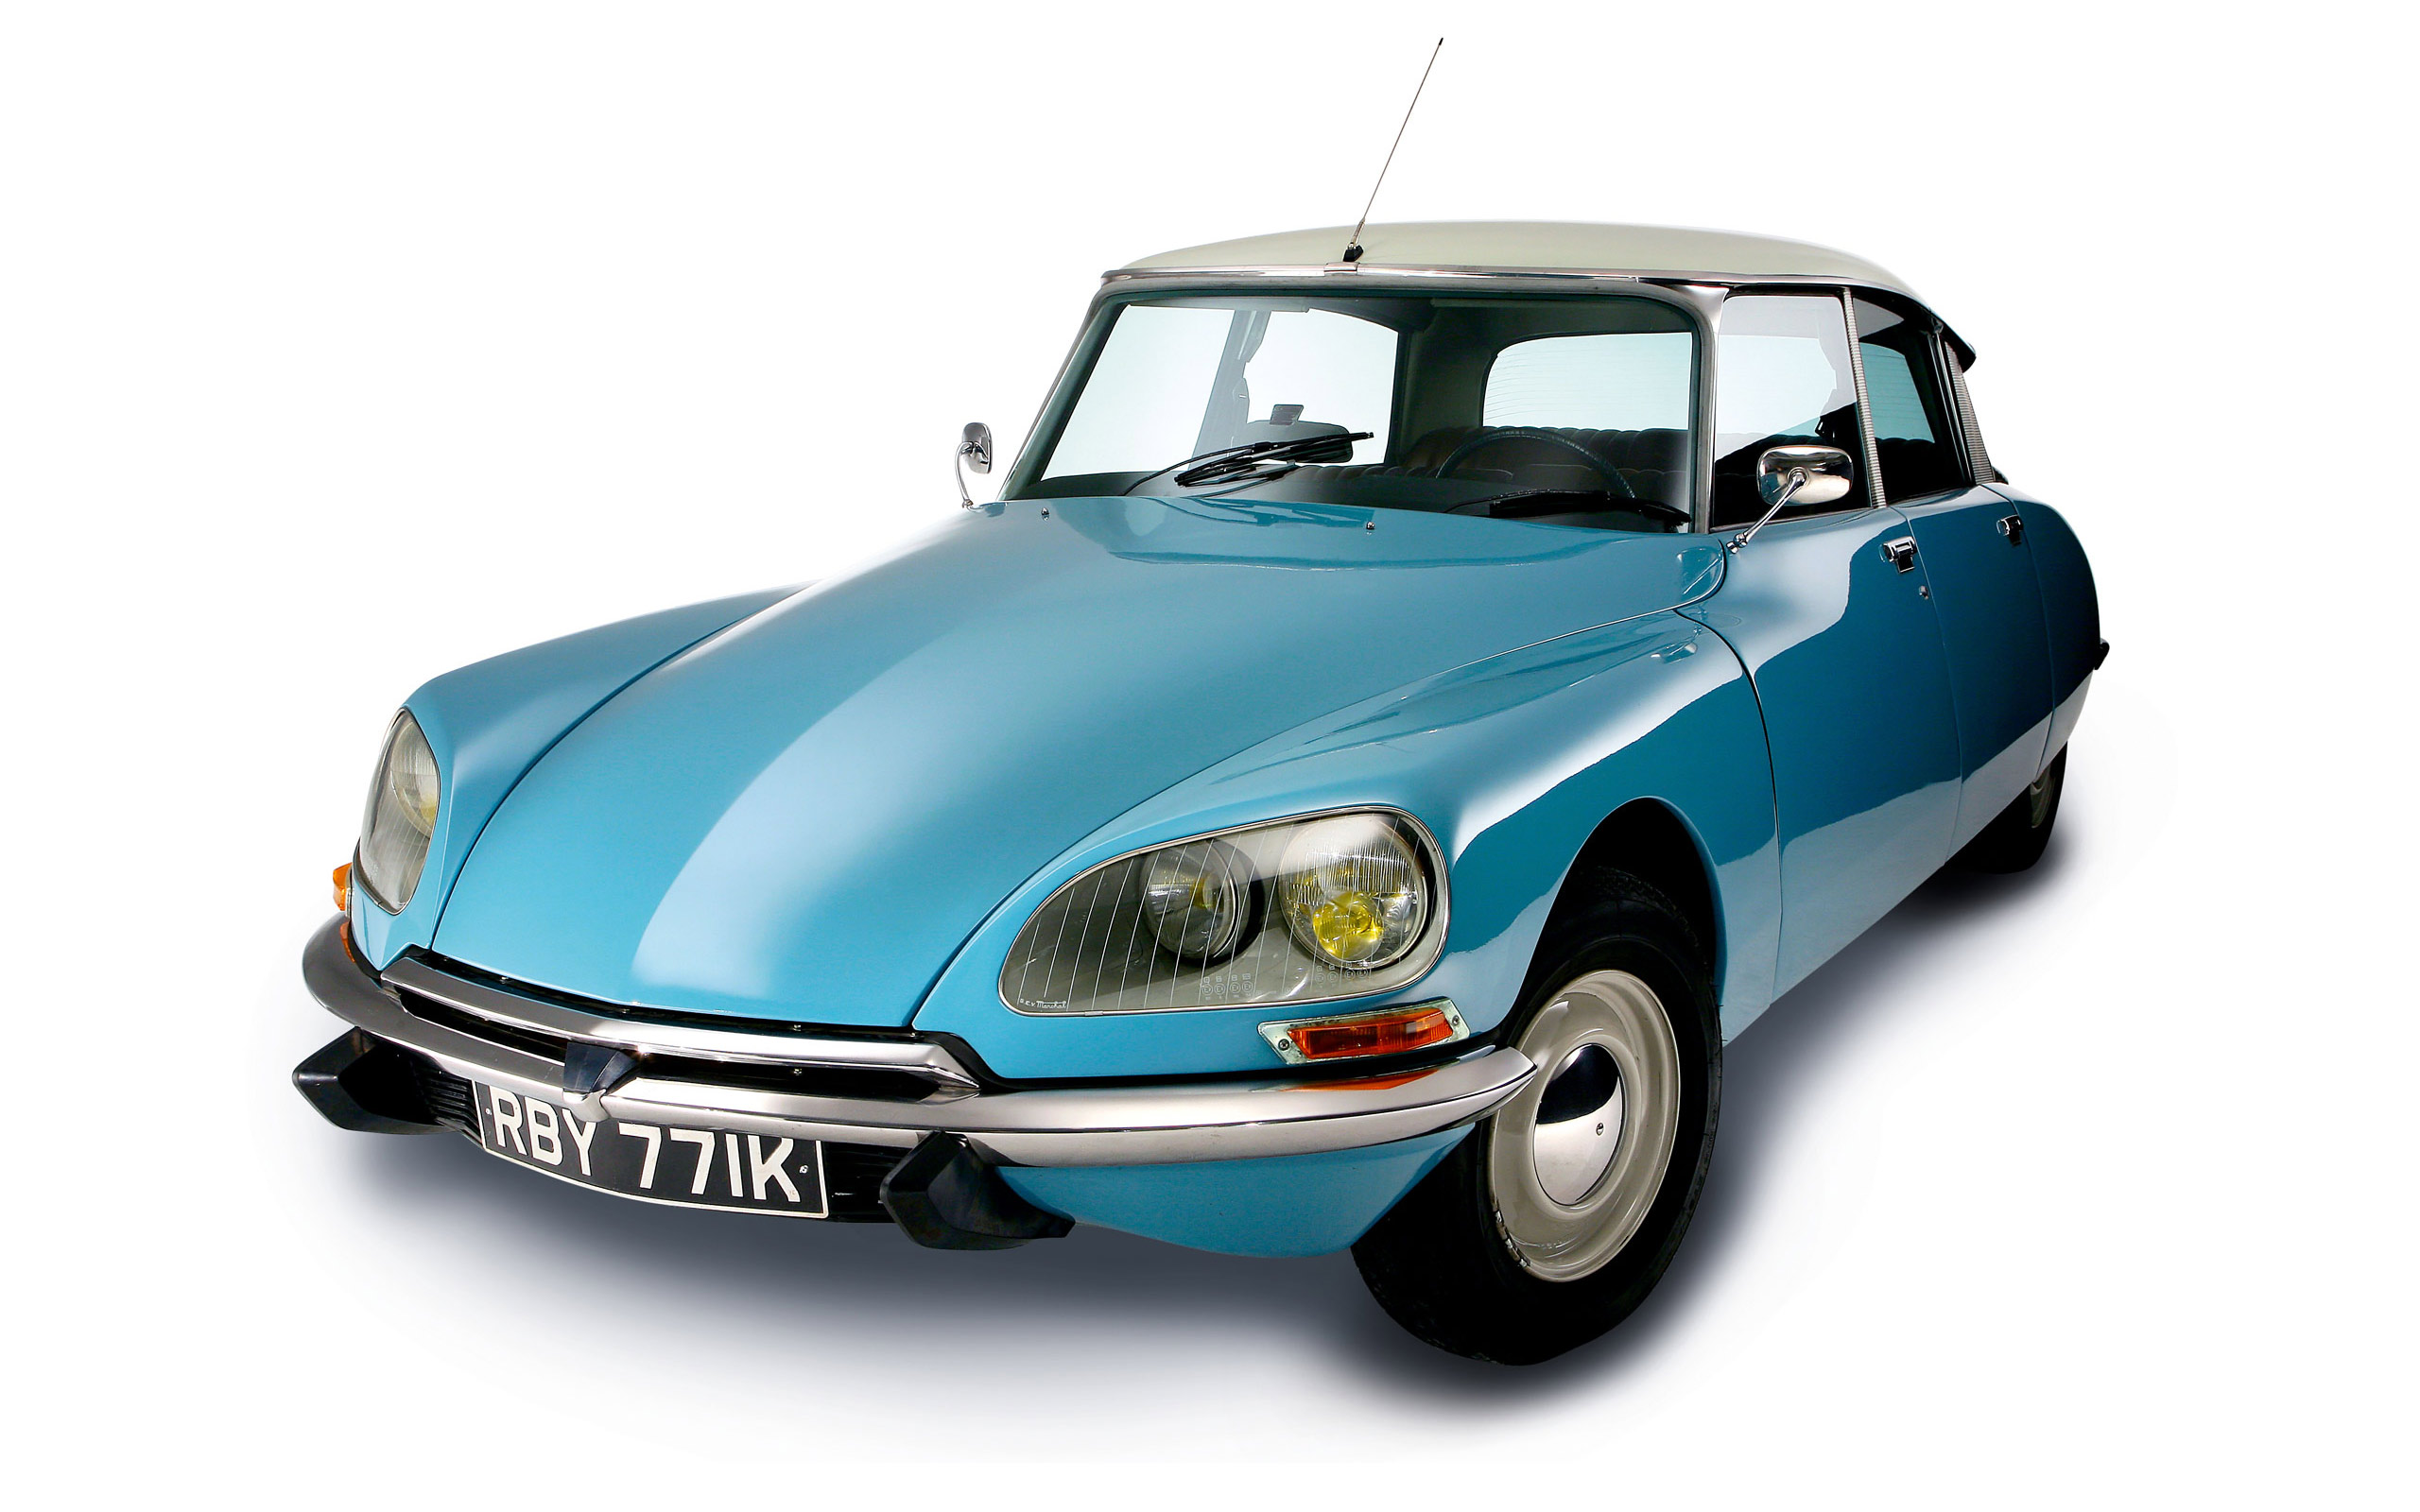 ... Bisschop openly admits to his long-standing love affair with perhaps the most iconic of vintage cars (certainly the most curvaceous) the Citroen DS.